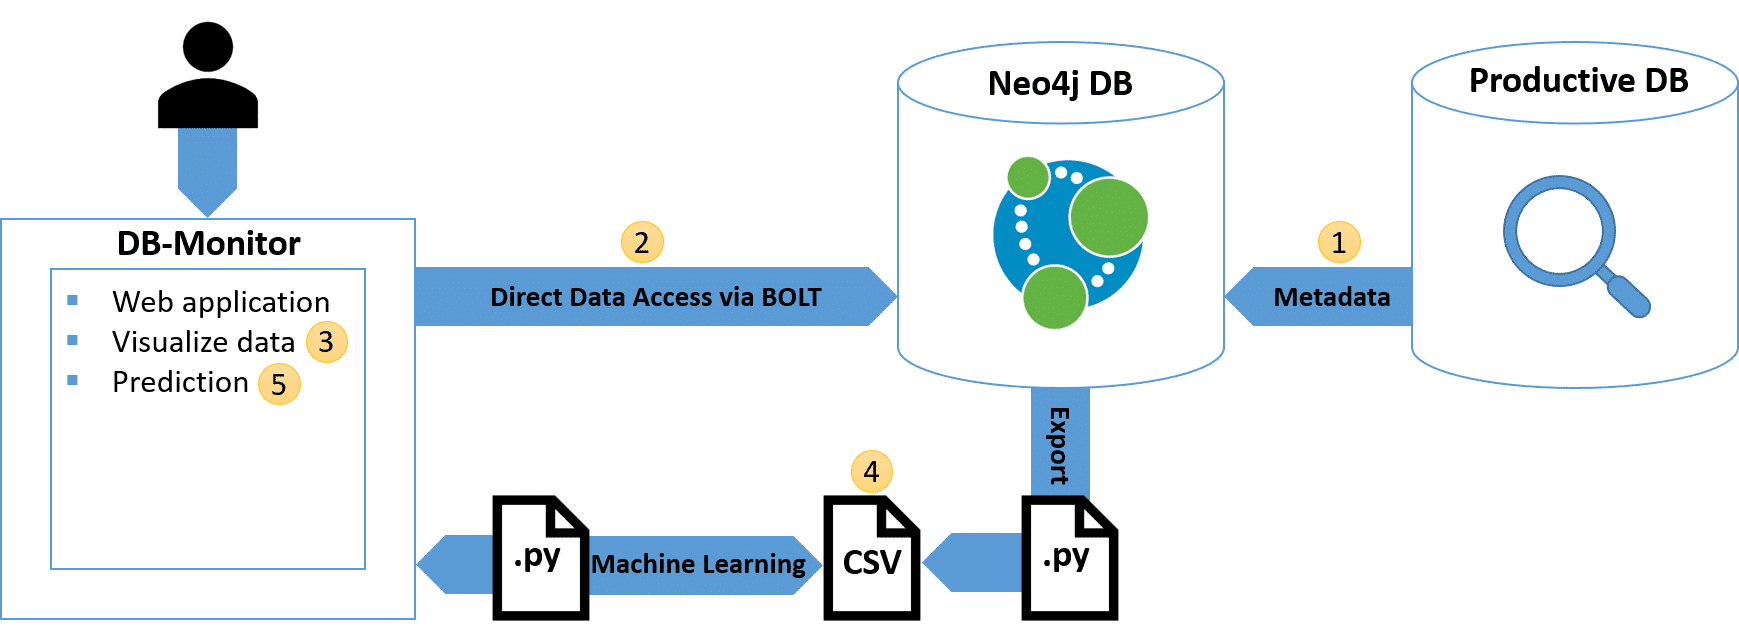 Automate Machine Learning process with Neo4j stored